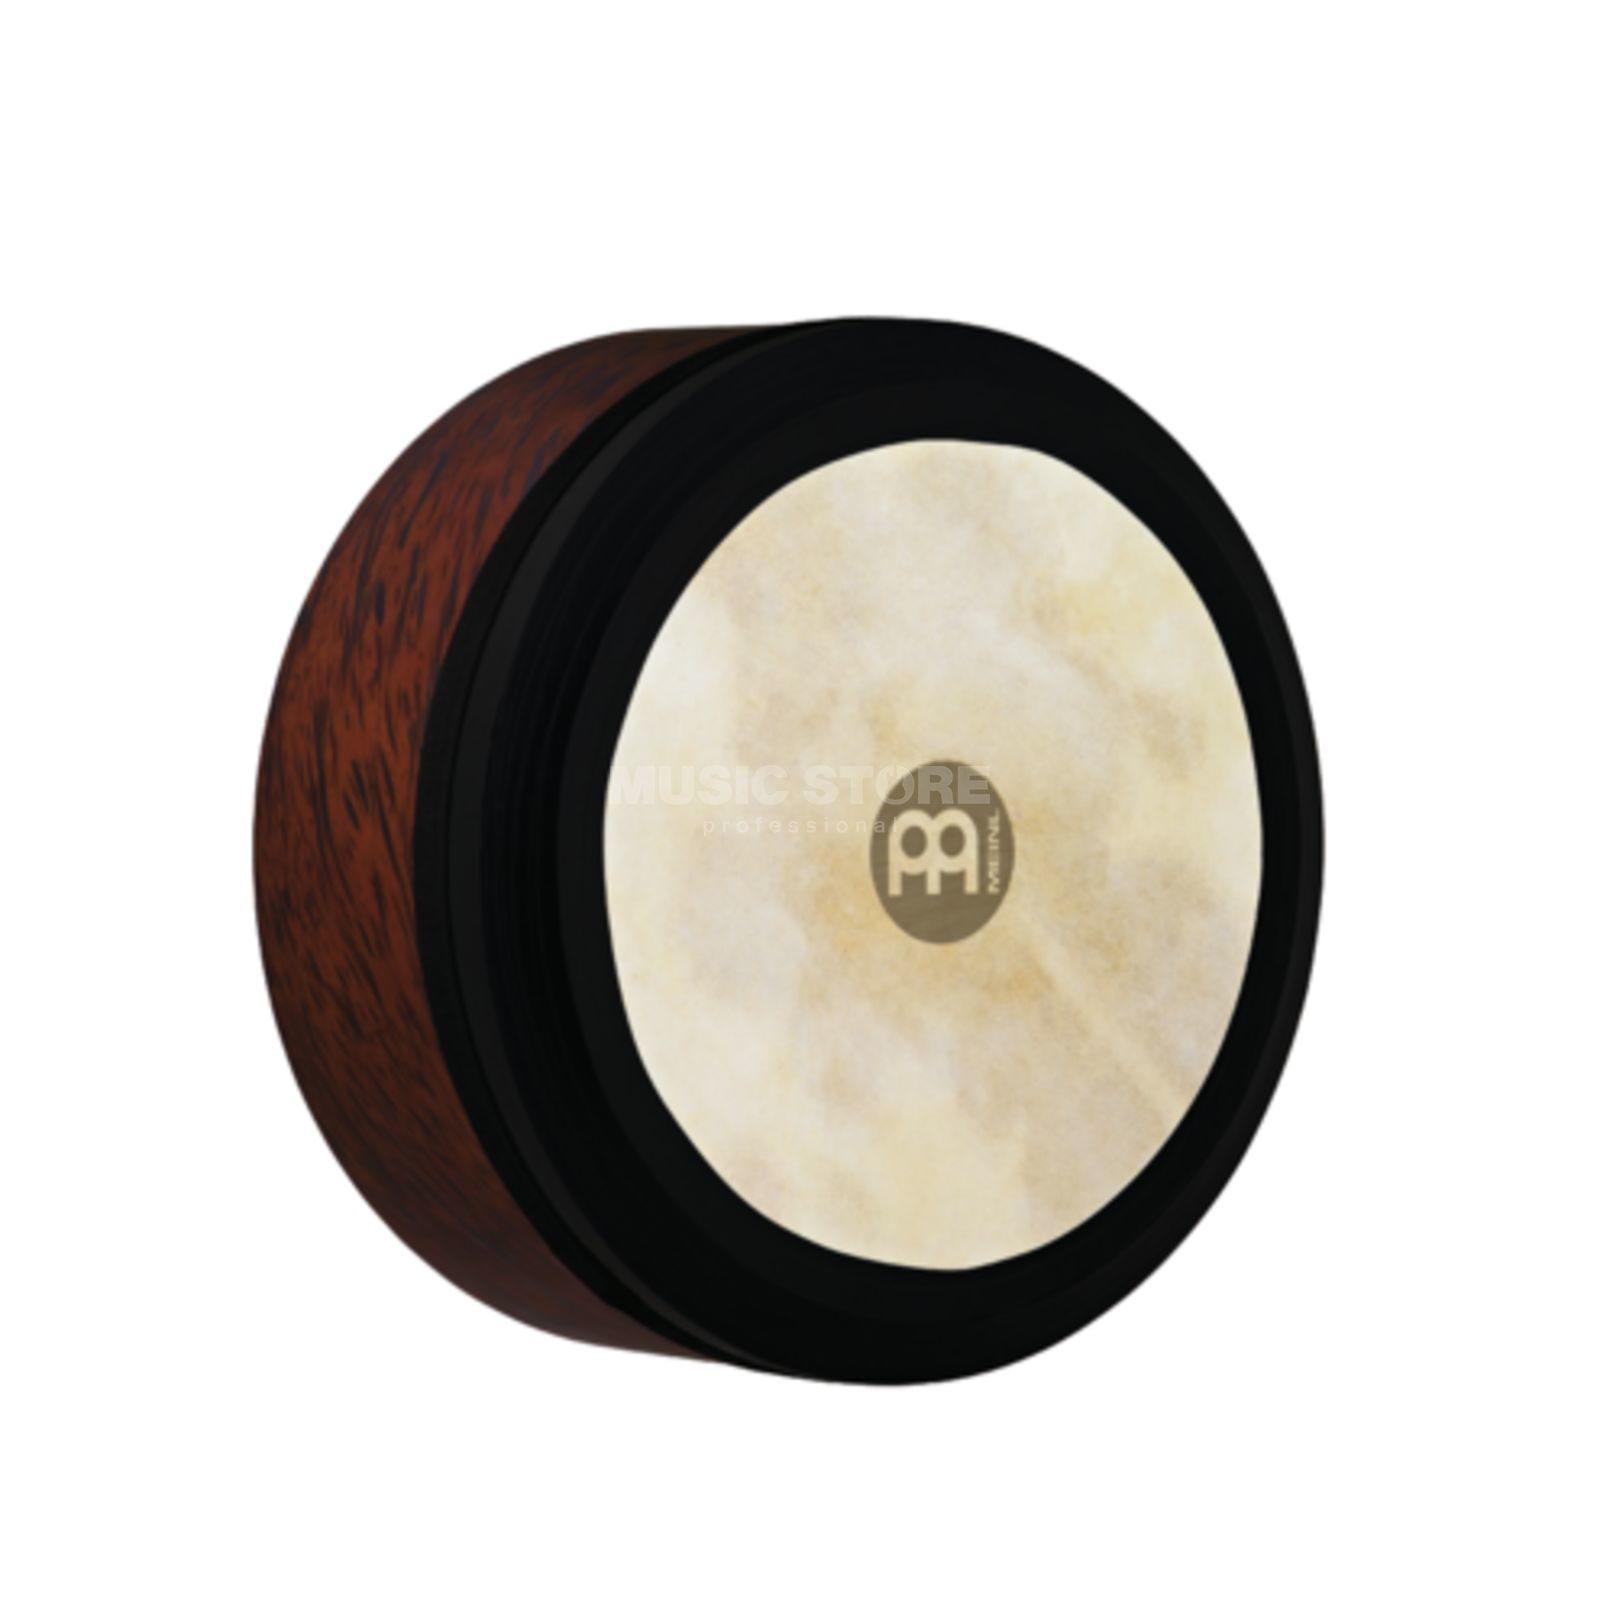 "Meinl Frame Drum Bodhran FD14IBO, 14""x6"", Brown Burl #BB Product Image"